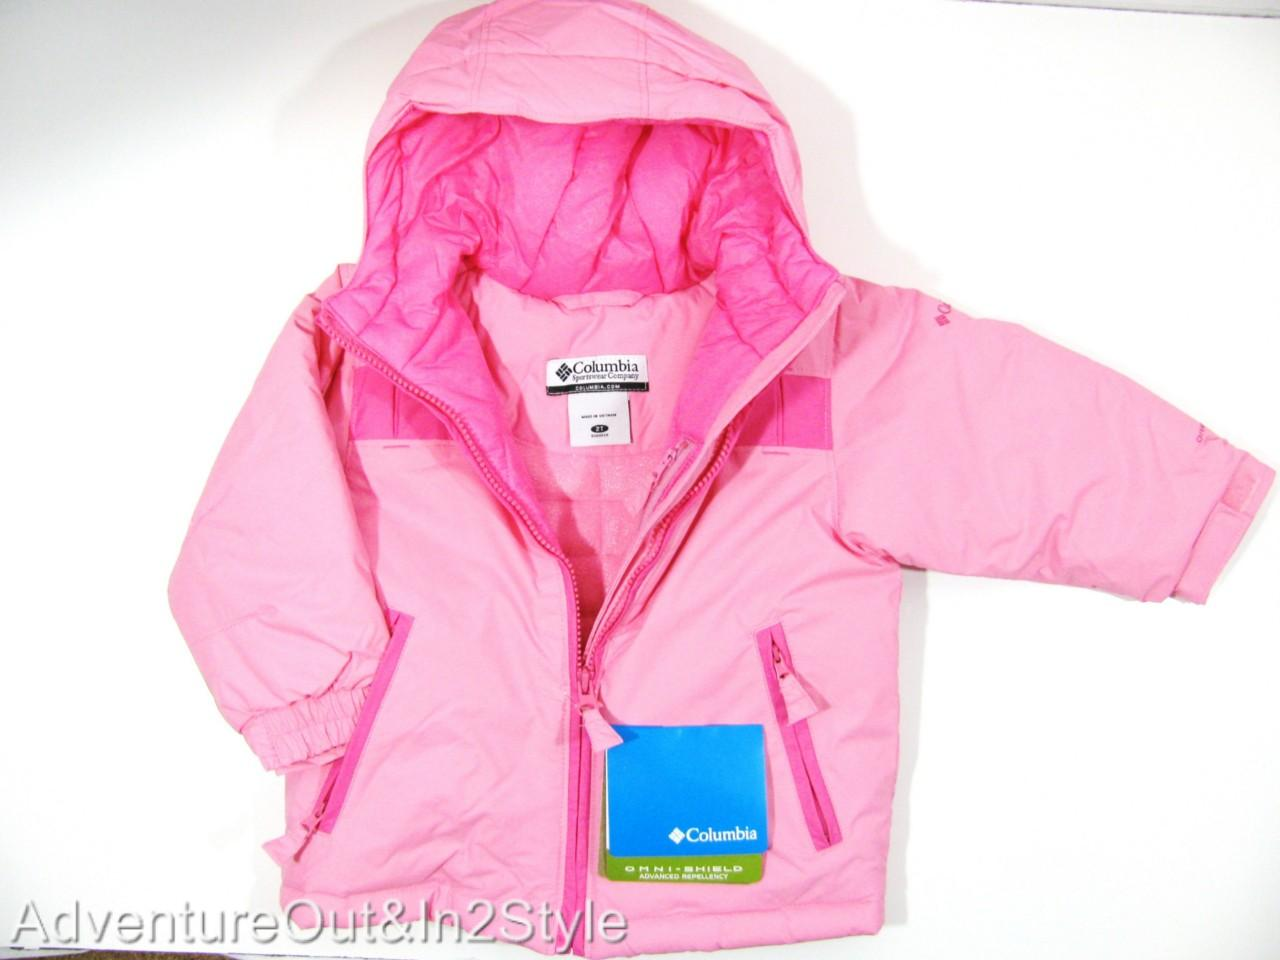 Free Shipping on $25+ & Free Returns! Bundle her up in toddler girls winter coats and jackets from top brands like The North Face, Patagonia, Columbia & more.